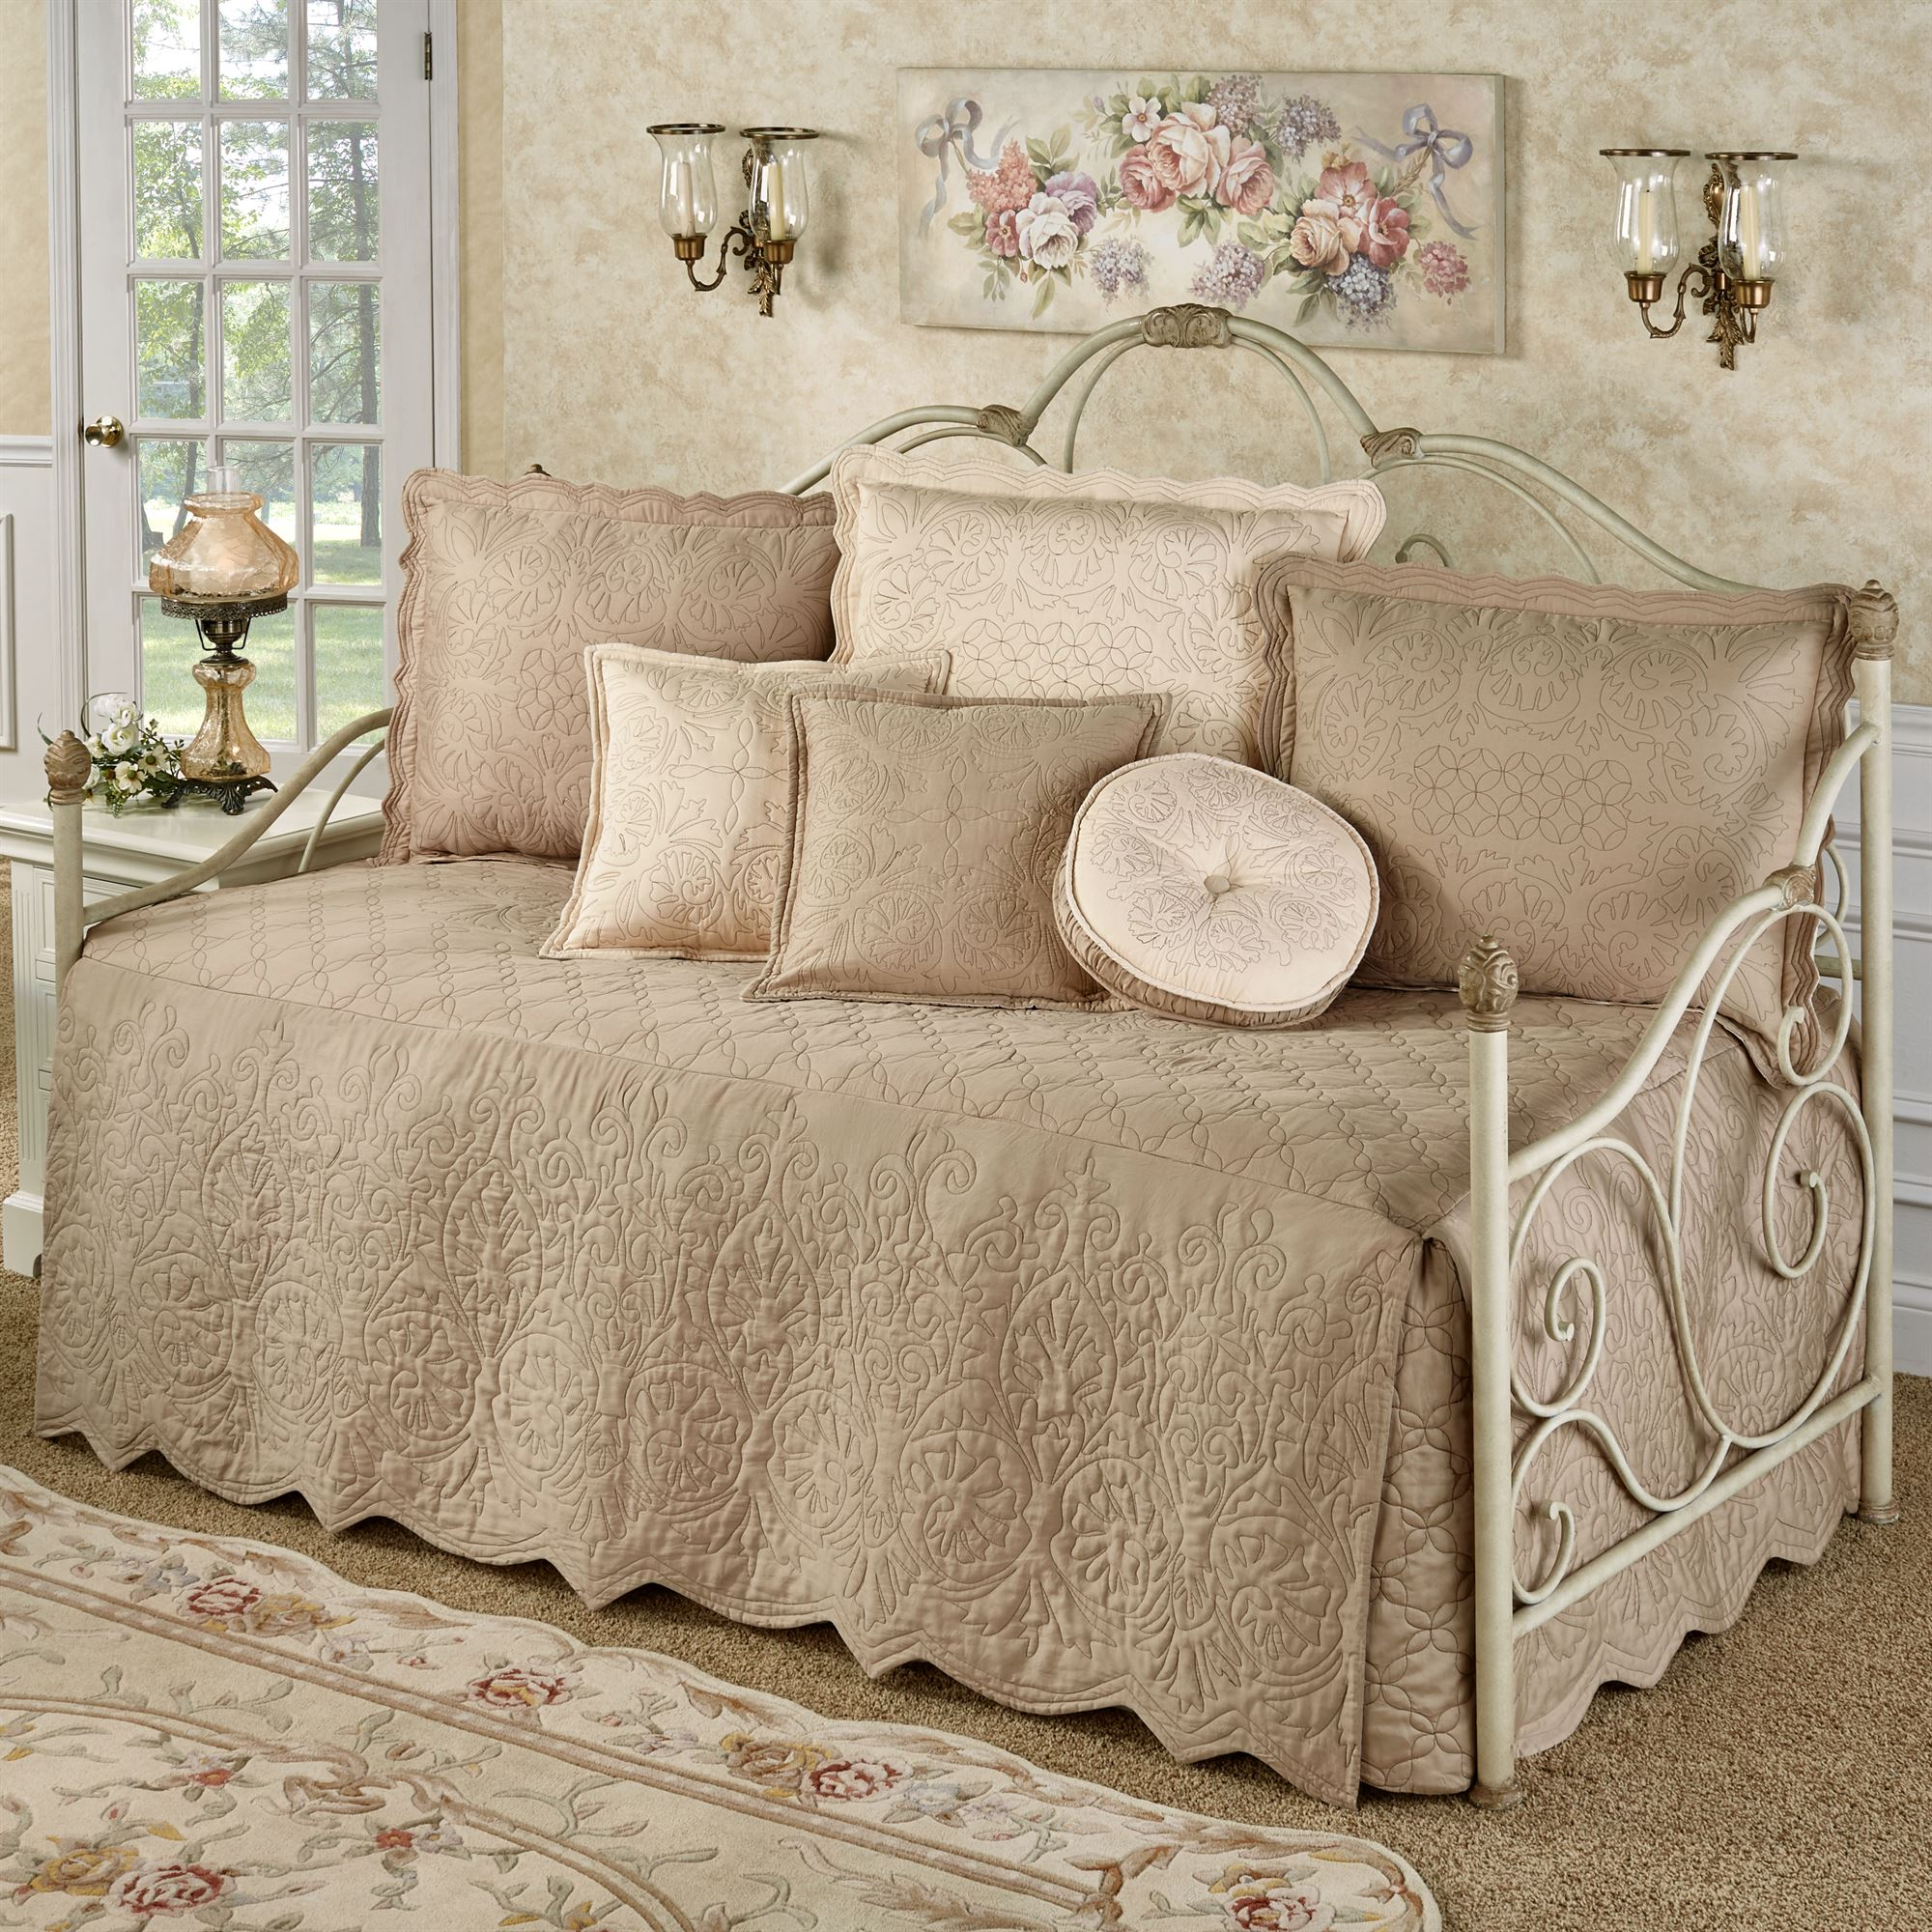 - Everafter Almond Quilted Daybed Bedding Set